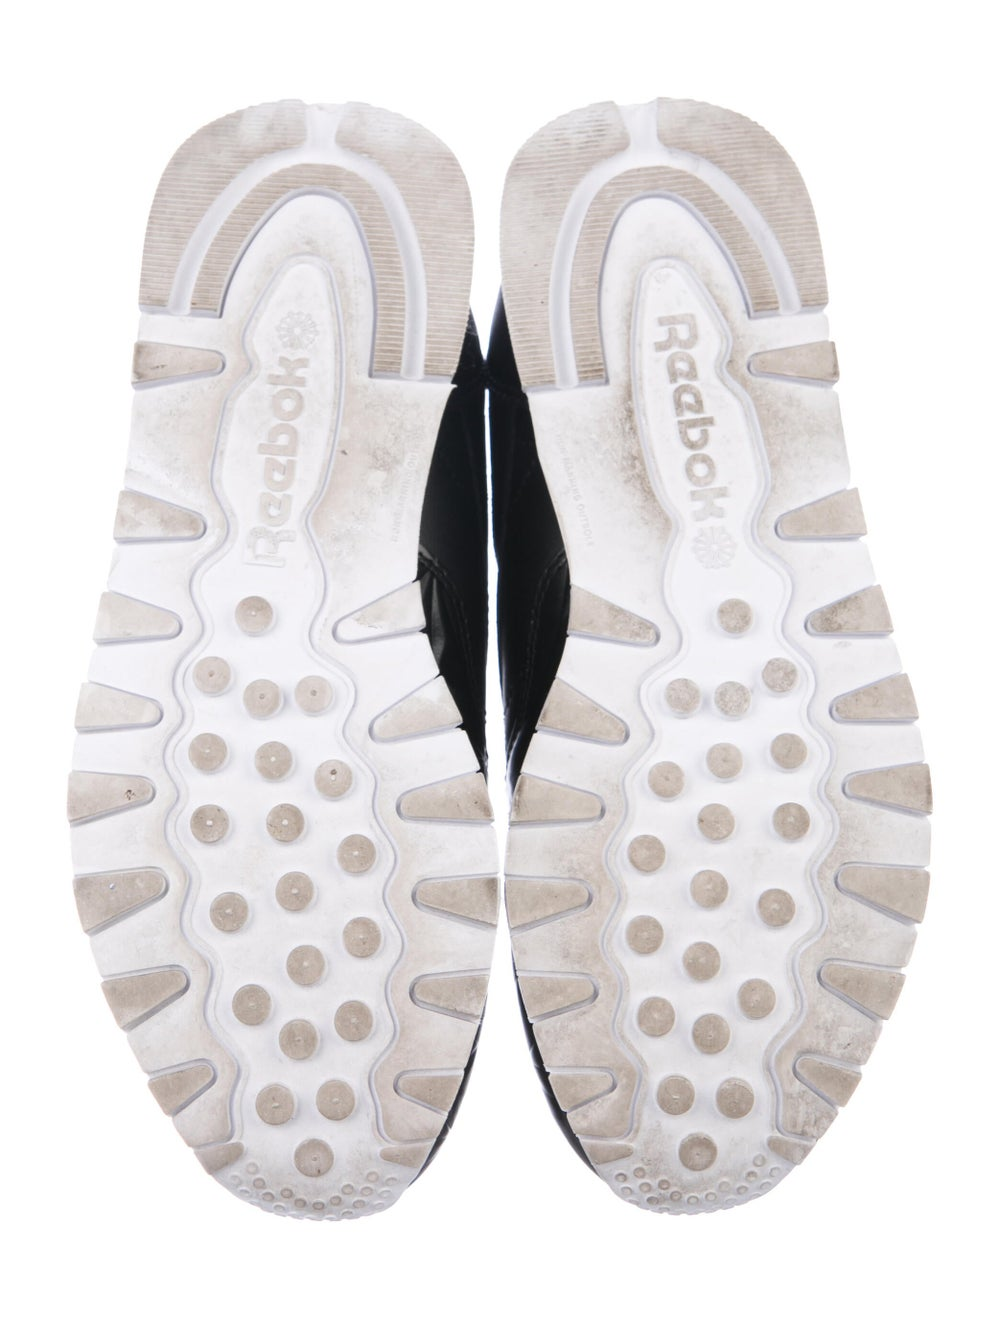 Reebok by Victoria Beckham Leather Low-Top Sneake… - image 5